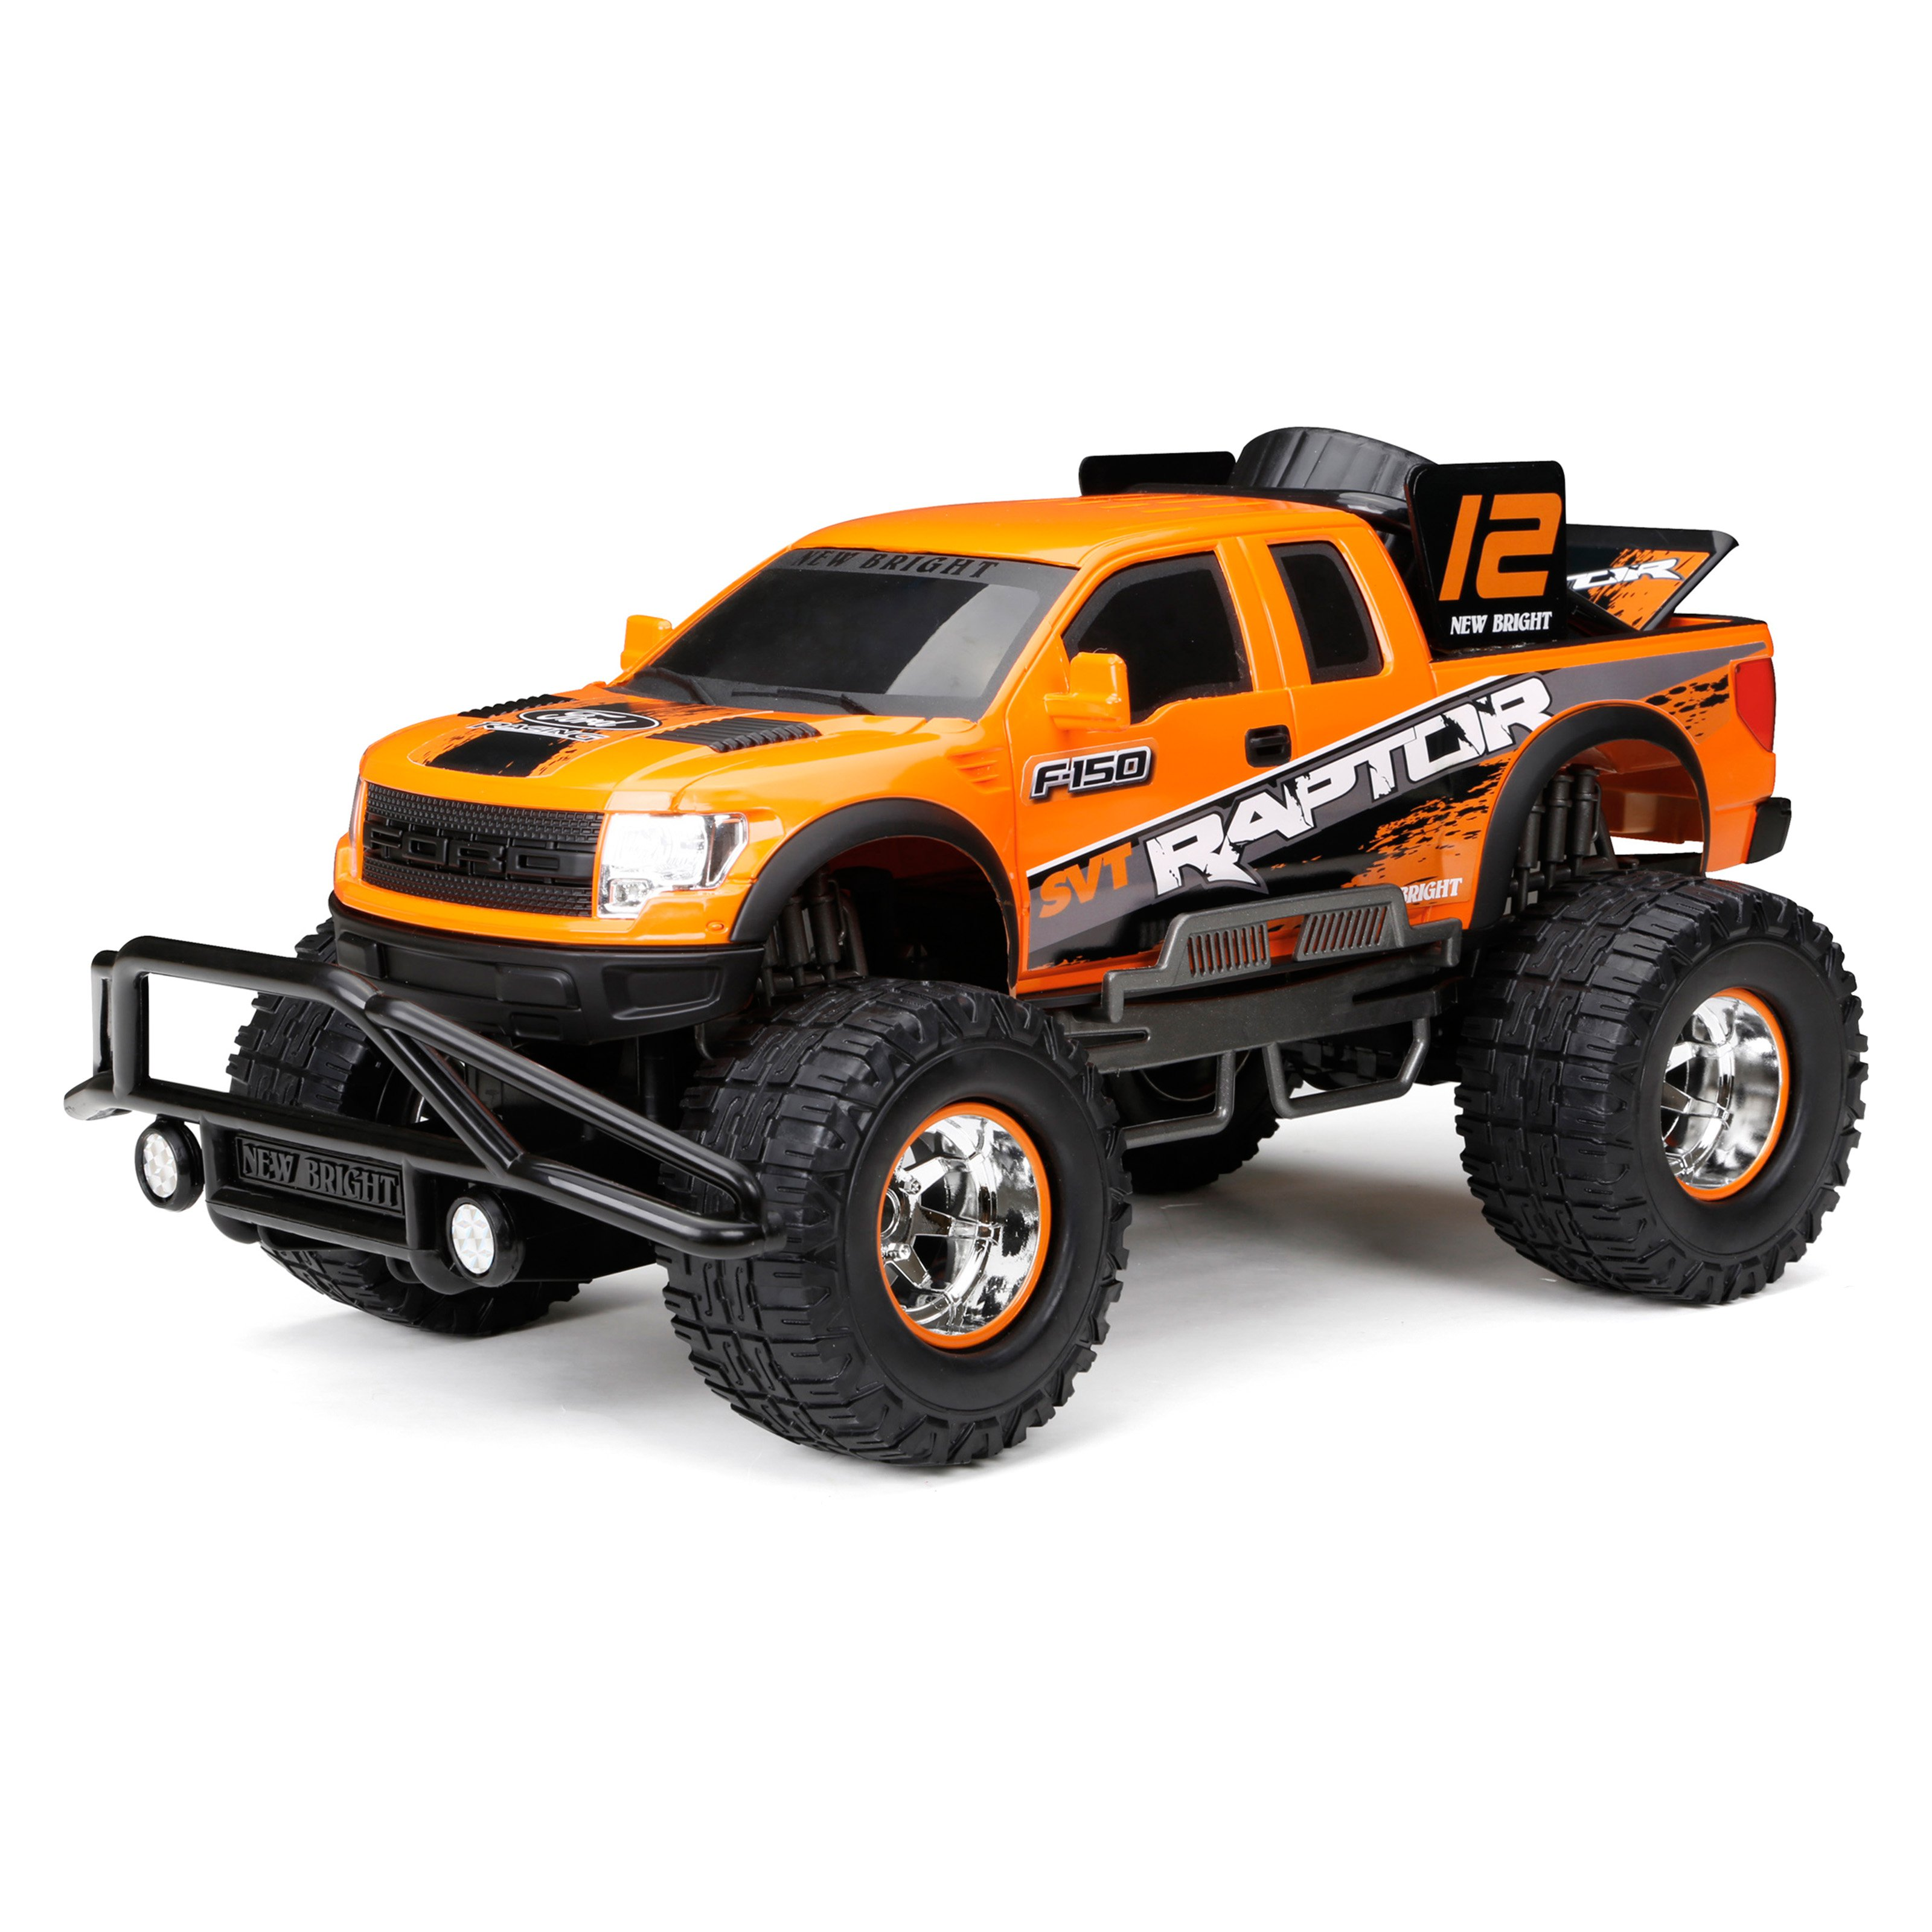 New bright 1 10 baja extreme ford f 150 raptor radio controlled toy walmart com